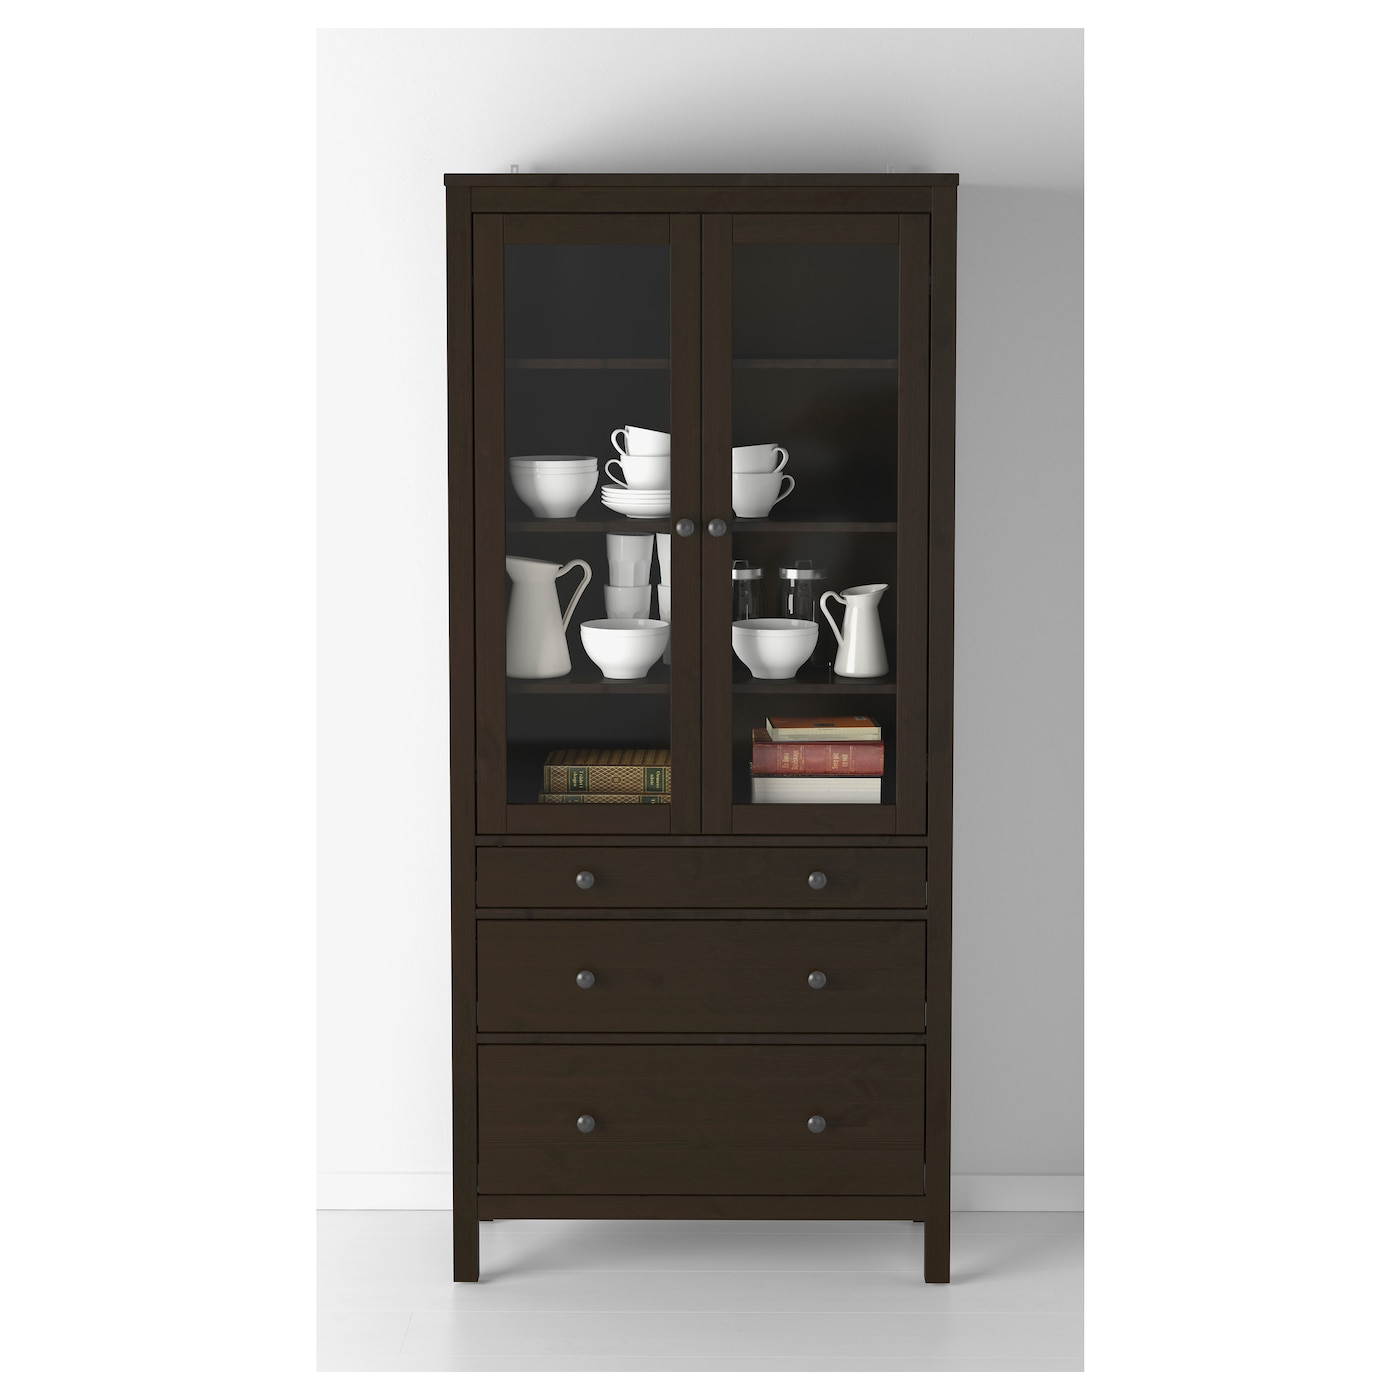 Glass Door Kitchen Cabinet Lighting: HEMNES Glass-door Cabinet With 3 Drawers Black-brown 90 X